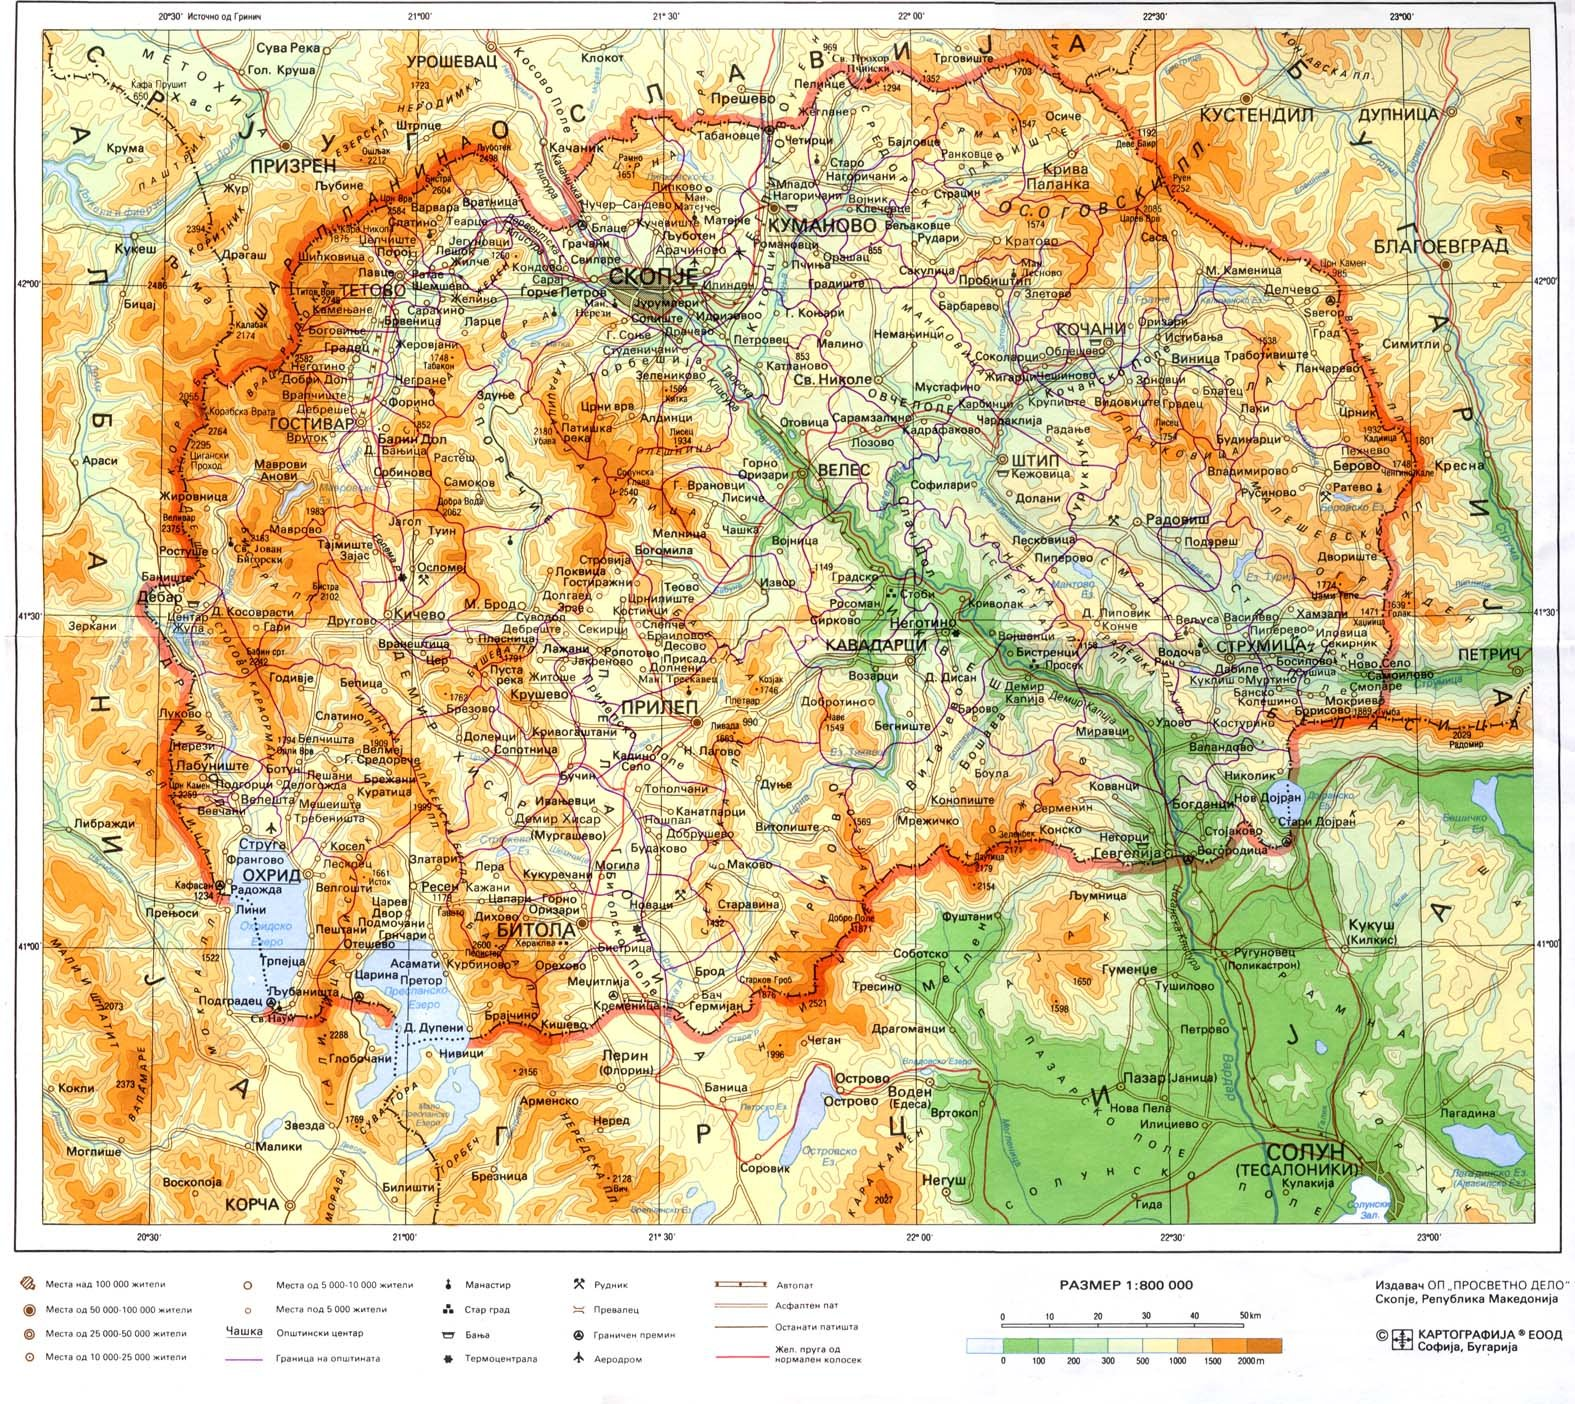 Macedonia in Maps a Link Atlas